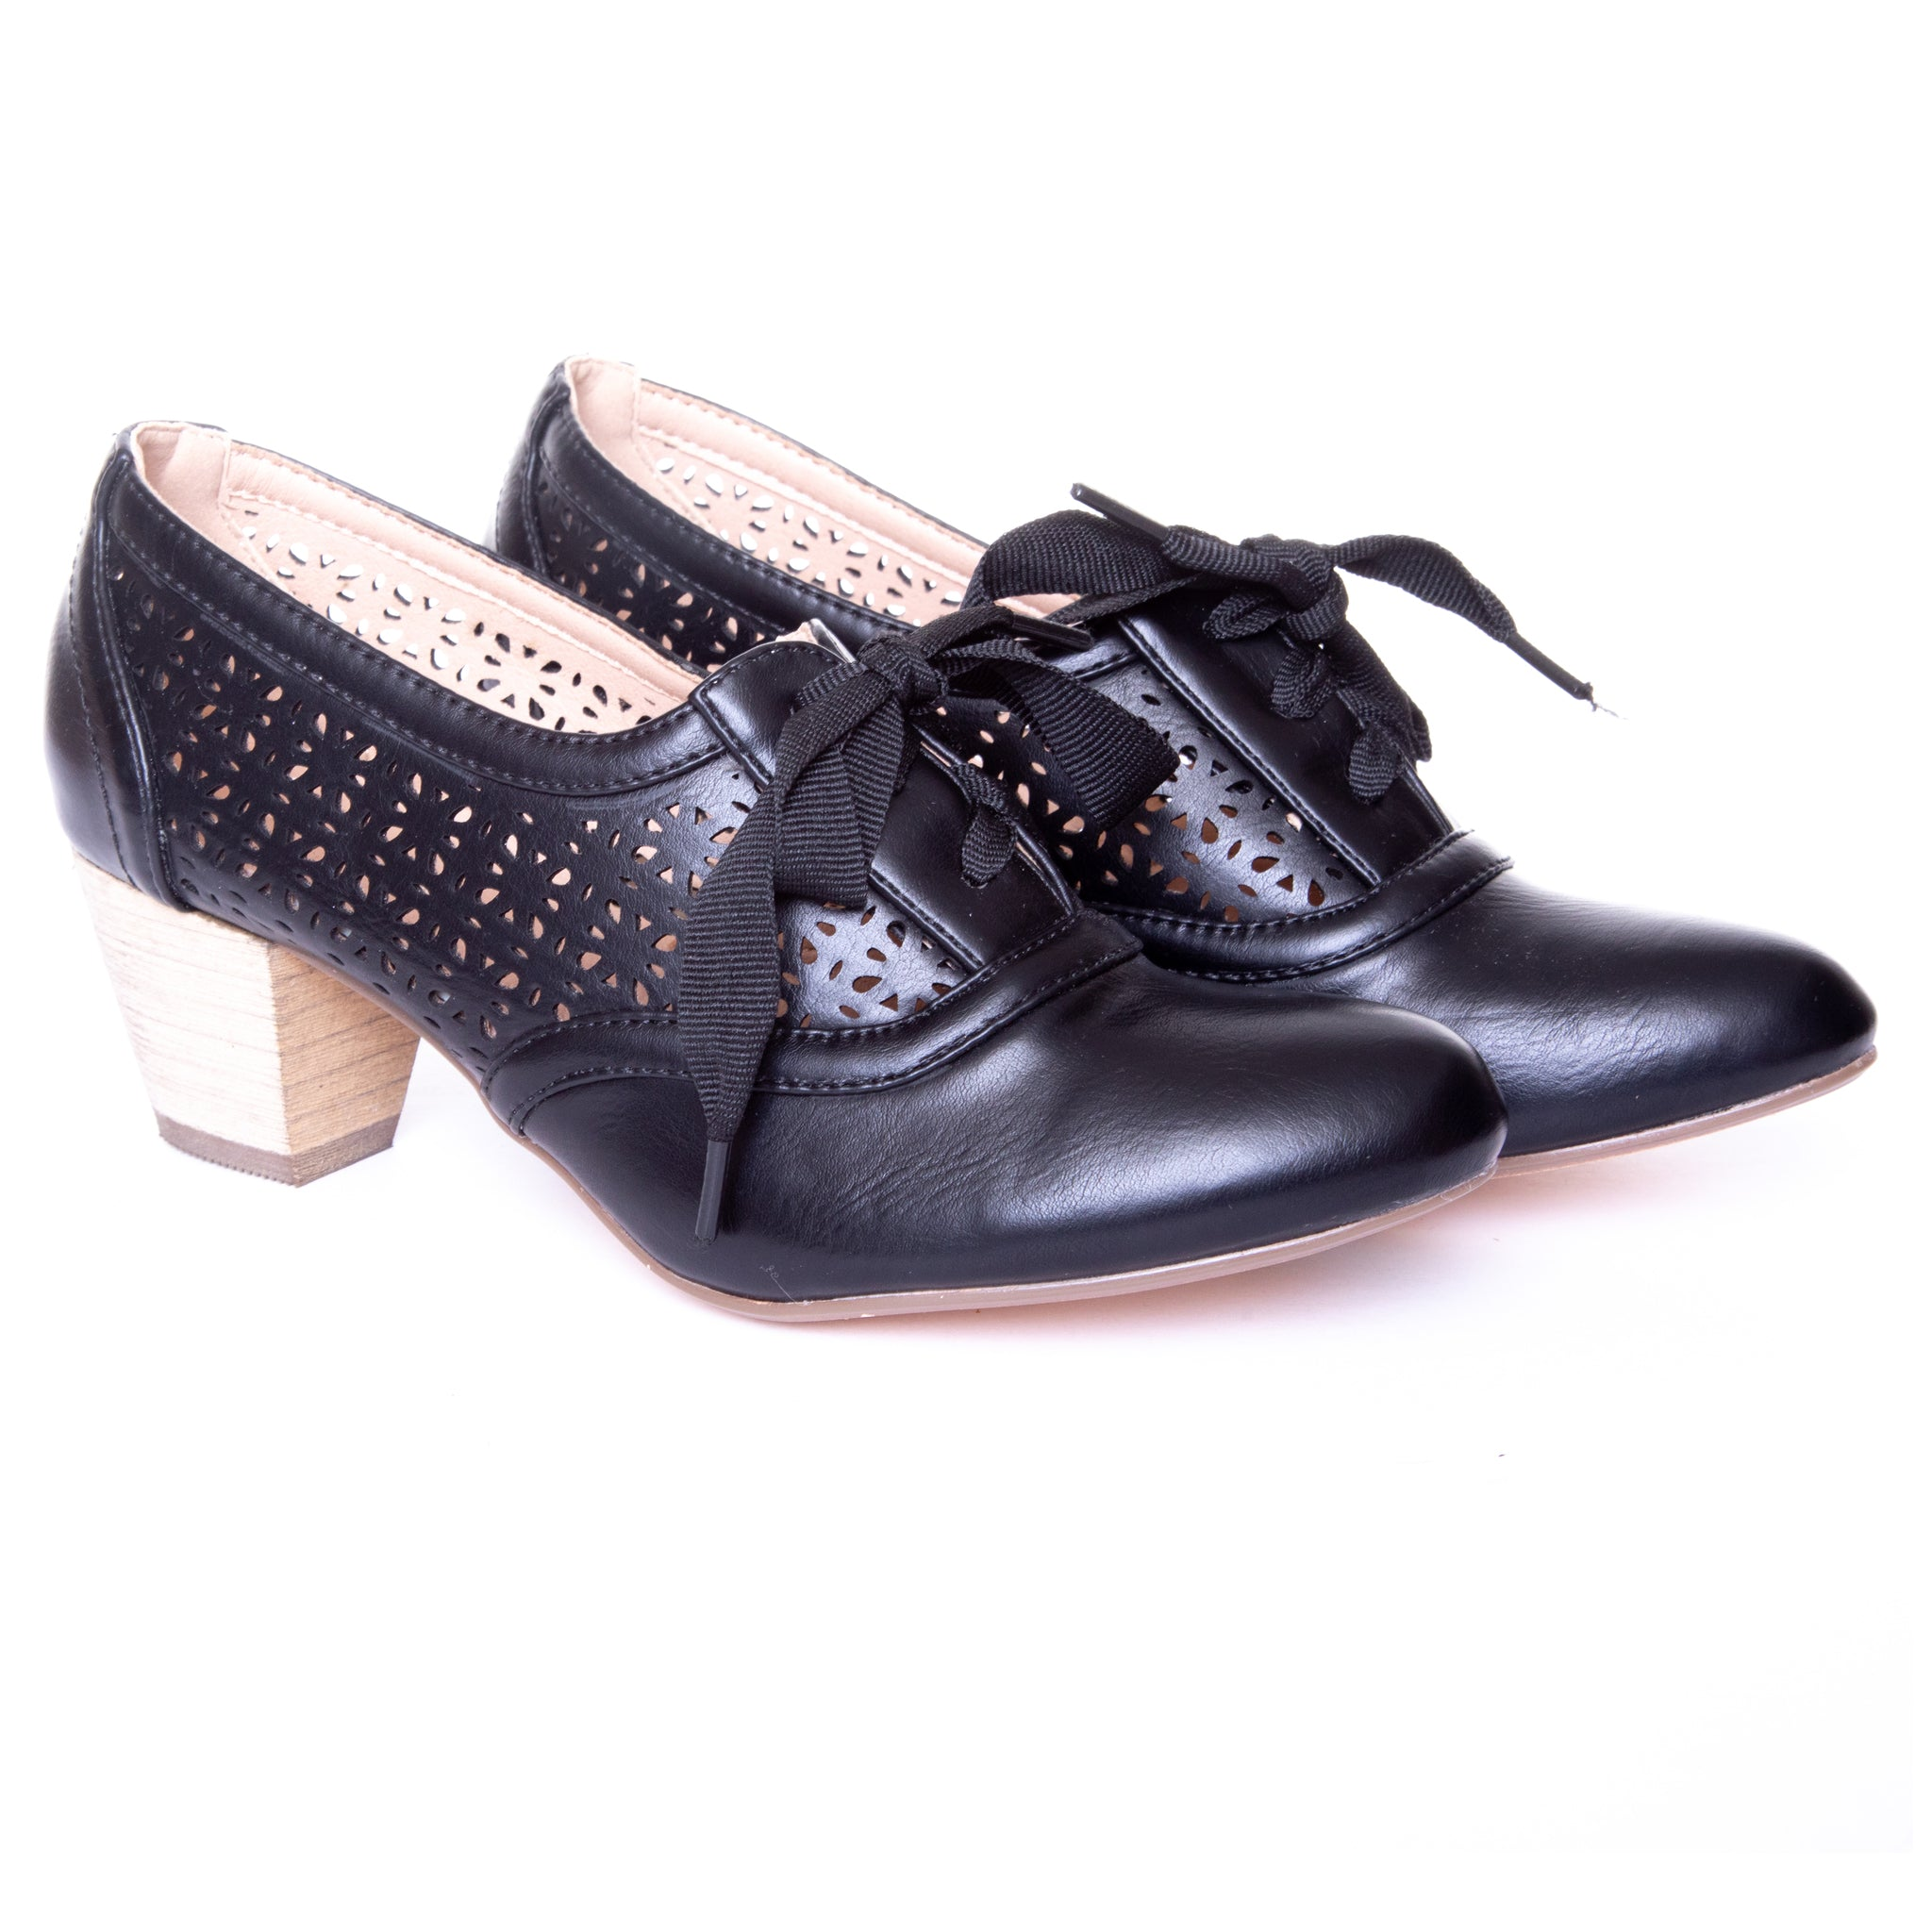 Selena Women's Lace-Up Oxford Pumps